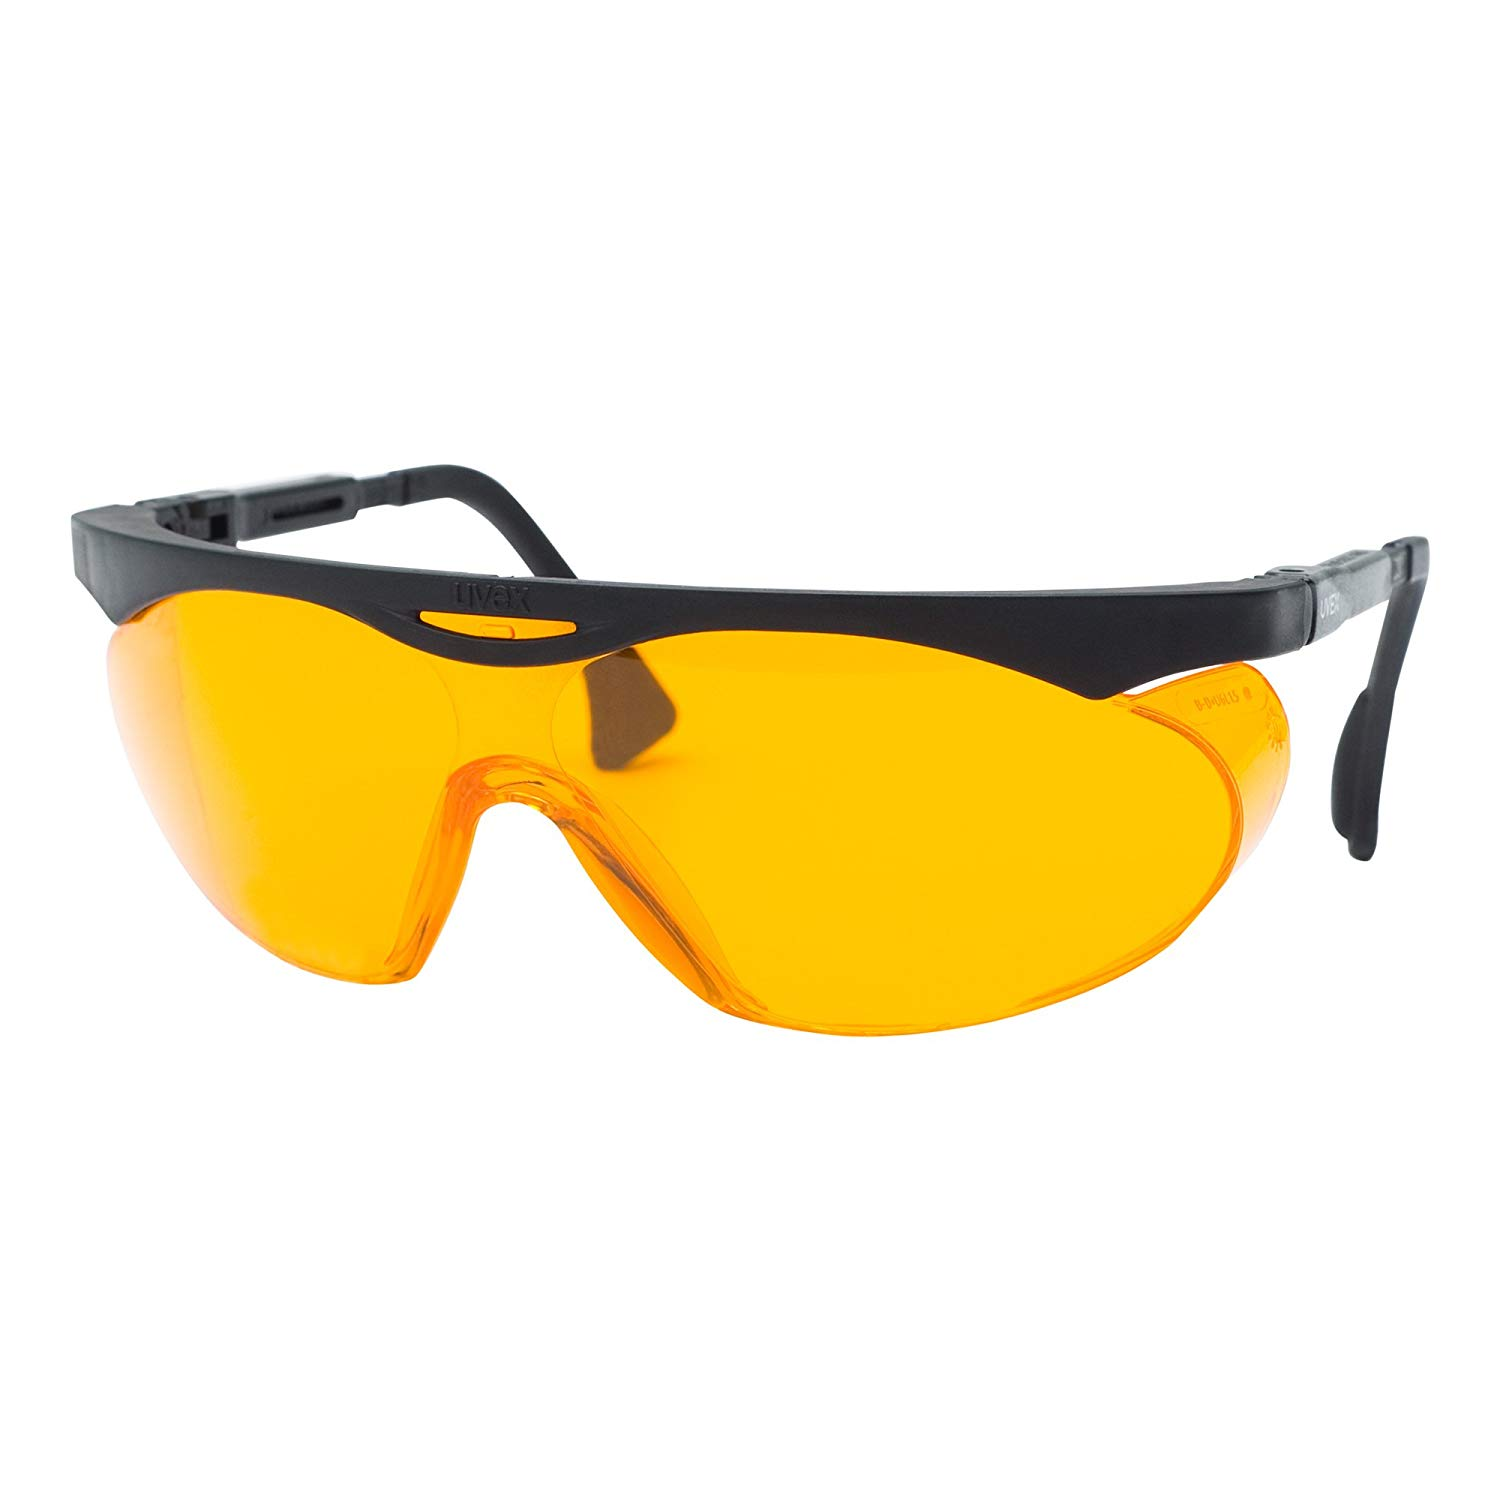 Blue-Blocking Glasses - Not the most stylish, but definitely an effective way to enhance melatonin production and ensure a great night's sleep.